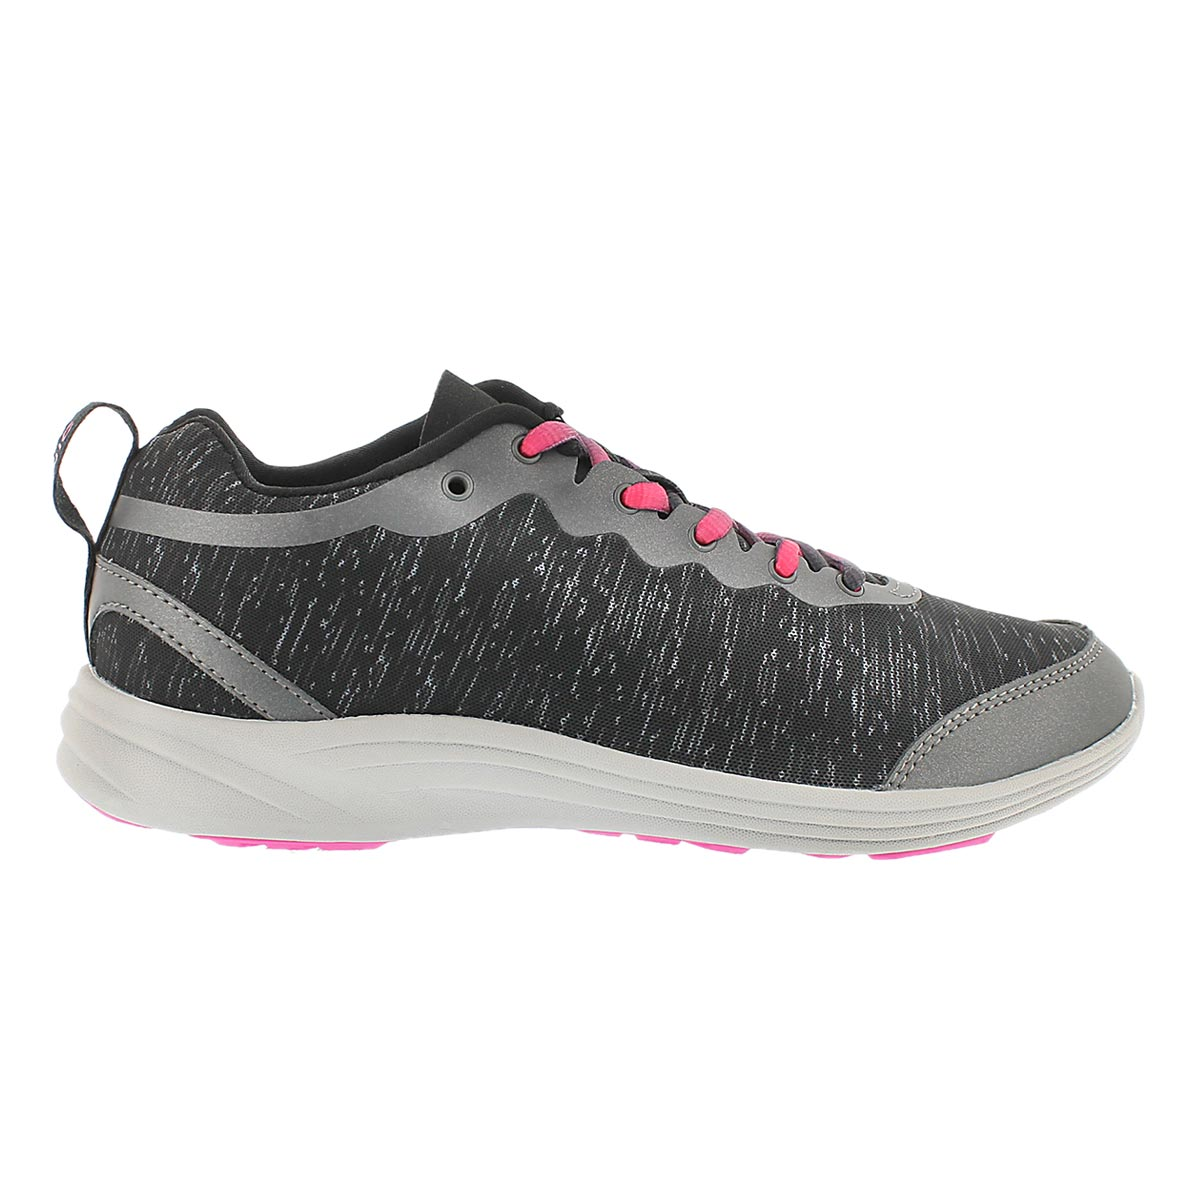 Lds Fyn blk arch support running shoe